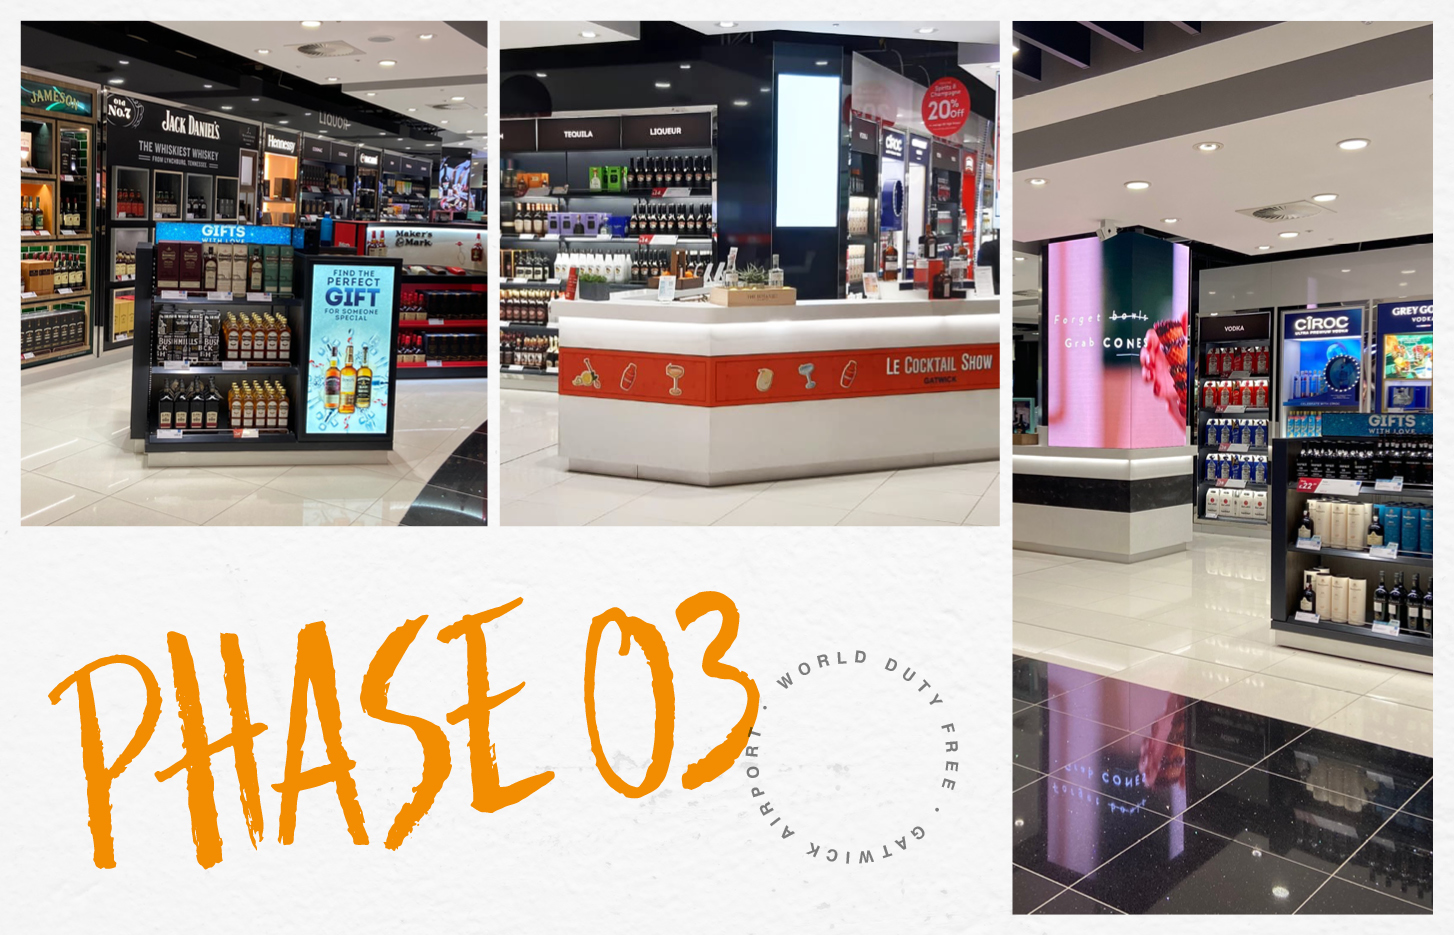 Phase 3 successfully completed at World Duty Free, Gatwick airport-0